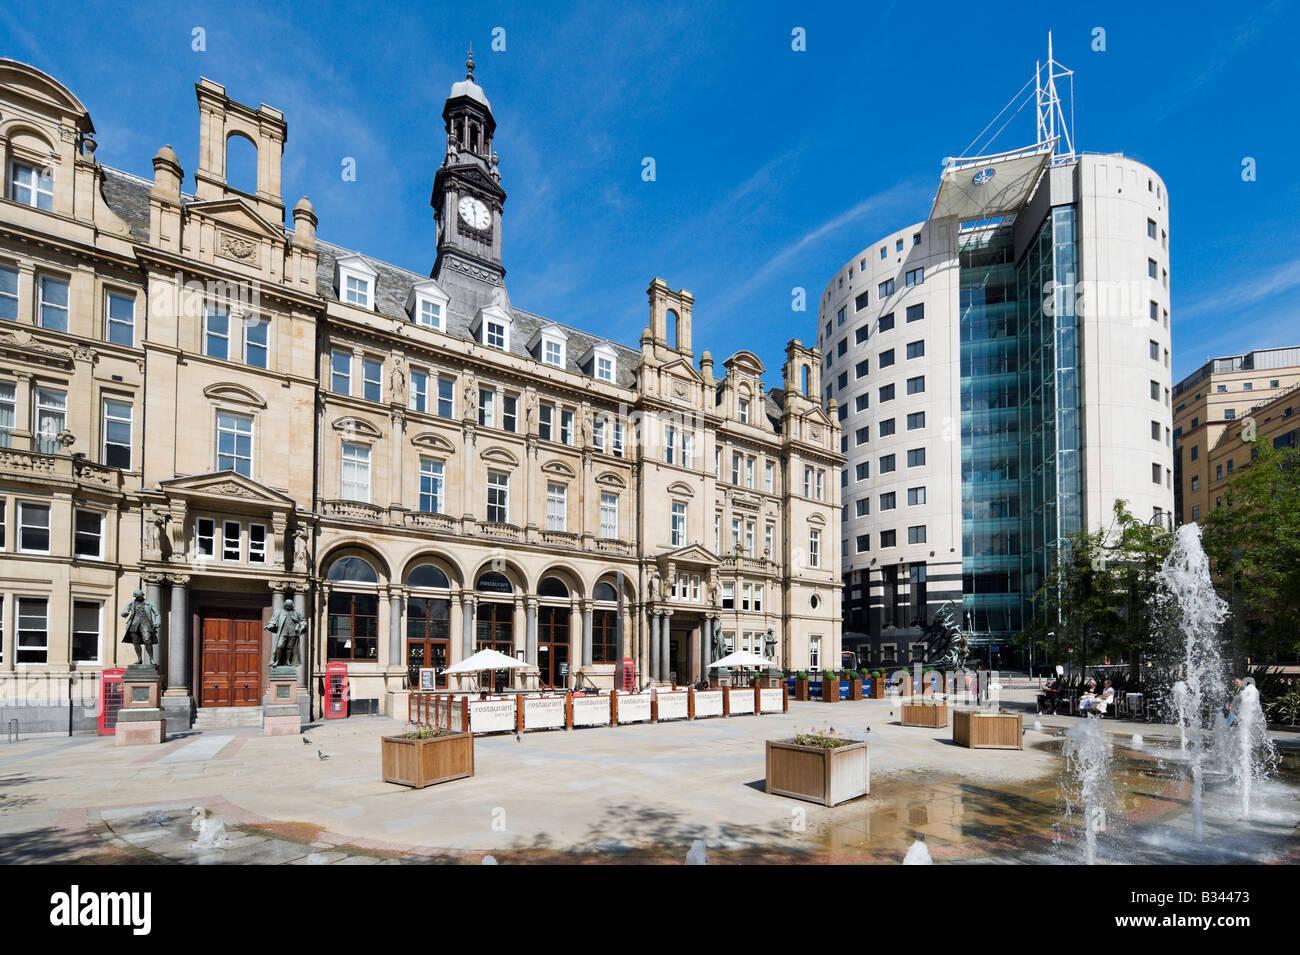 The Old Post Office containing The Restaurant Bar and Grill, City Square, Leeds, West Yorkshire, England - Stock Image